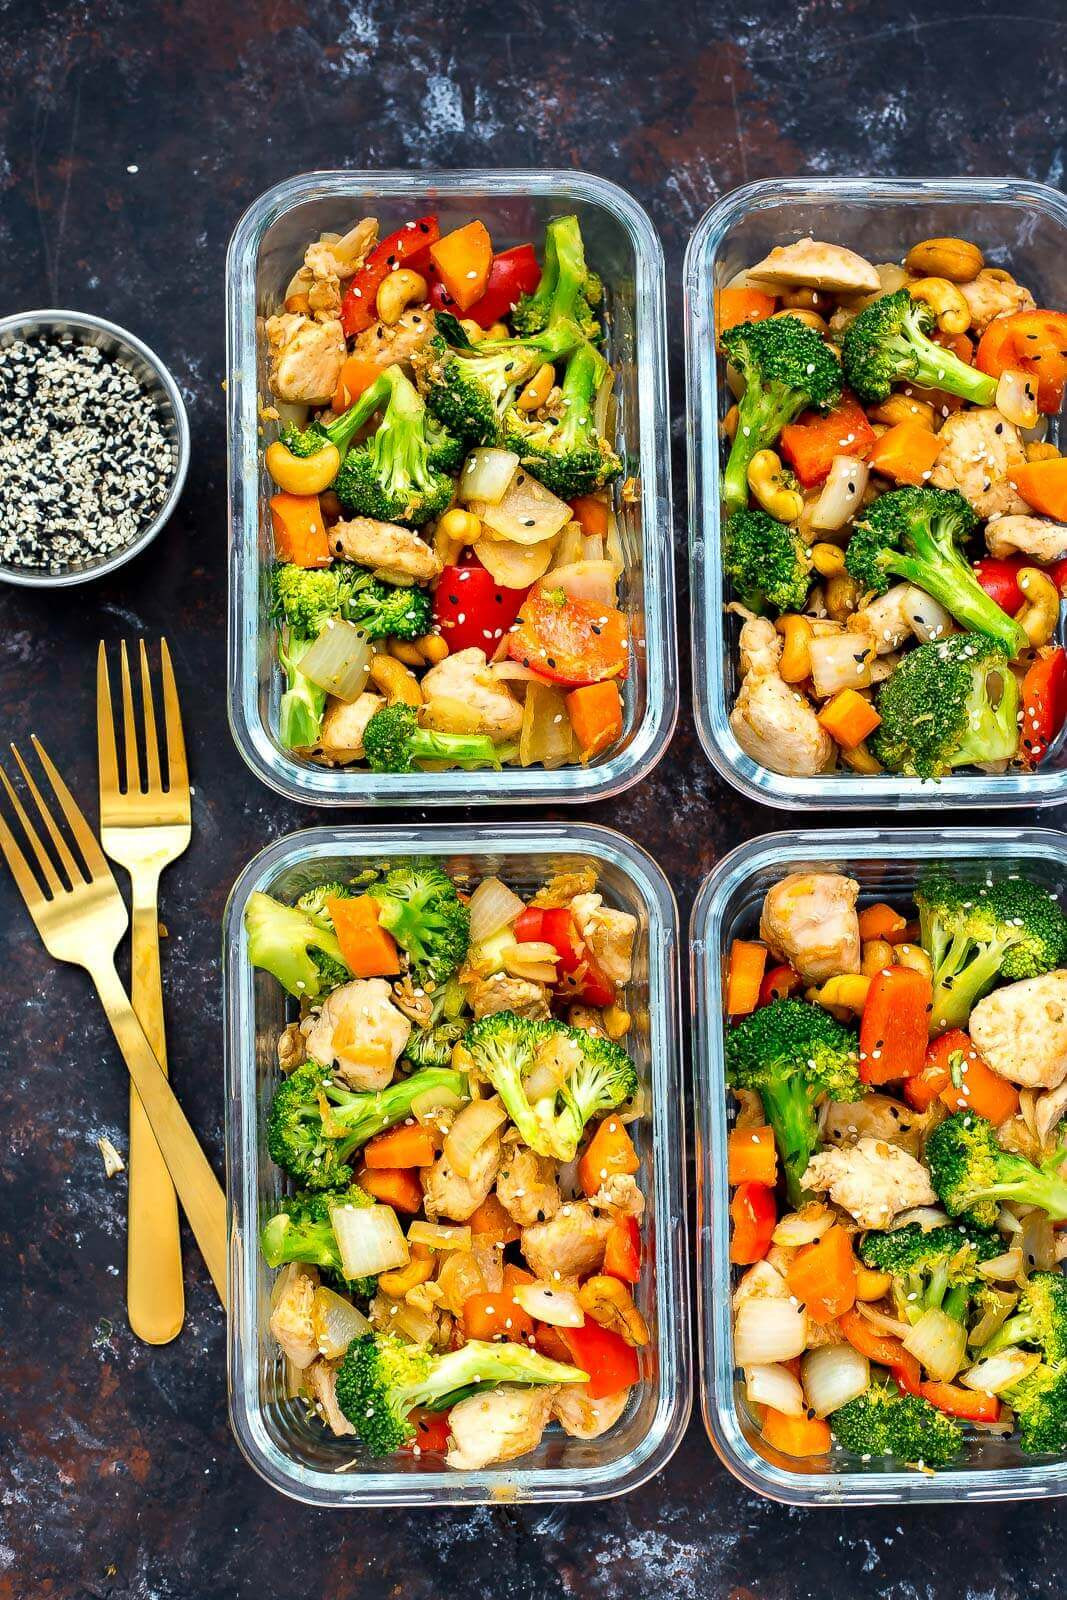 Healthy Meal Prep Dinners  20 Easy Healthy Meal Prep Lunch Ideas for Work The Girl